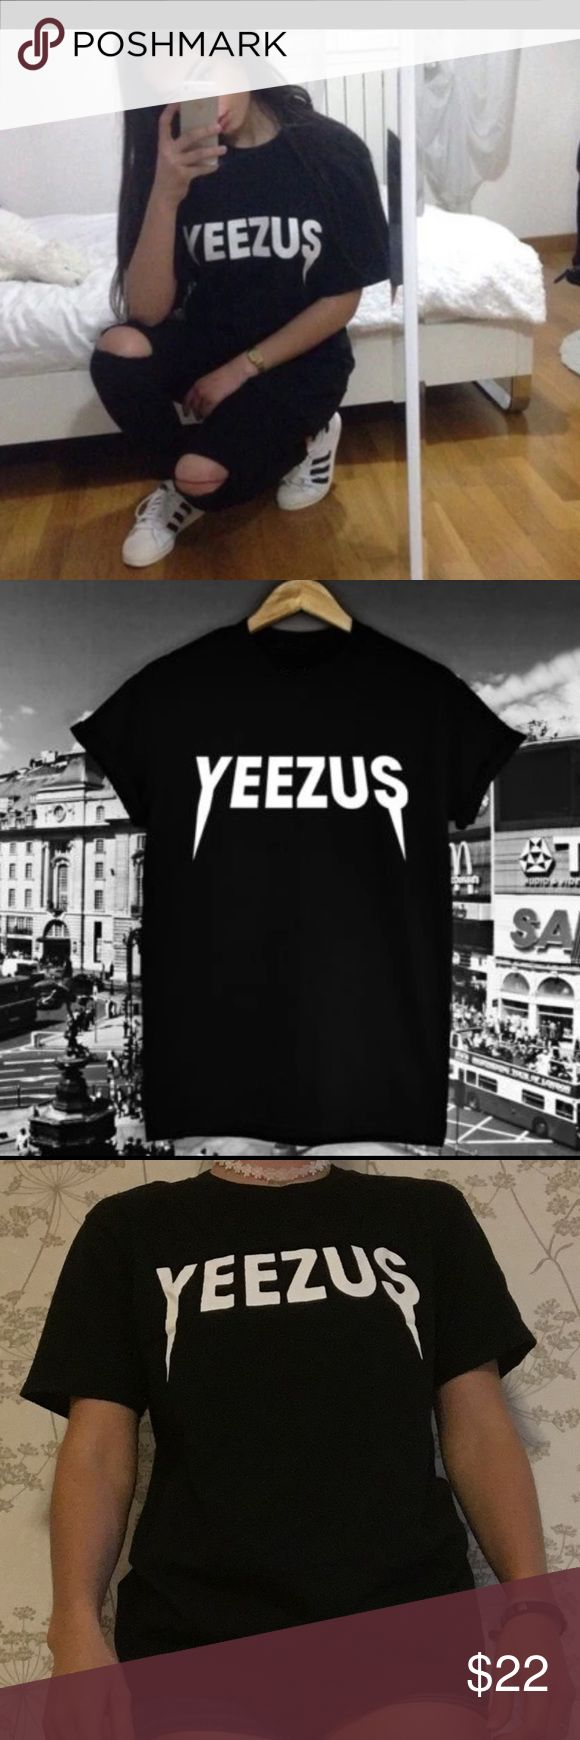 Black yeezus t shirt! ❤️ new in packaging Brand new, such a cute shirt inspired by Kanye west, ❤️ size small Tops Tees - Short Sleeve